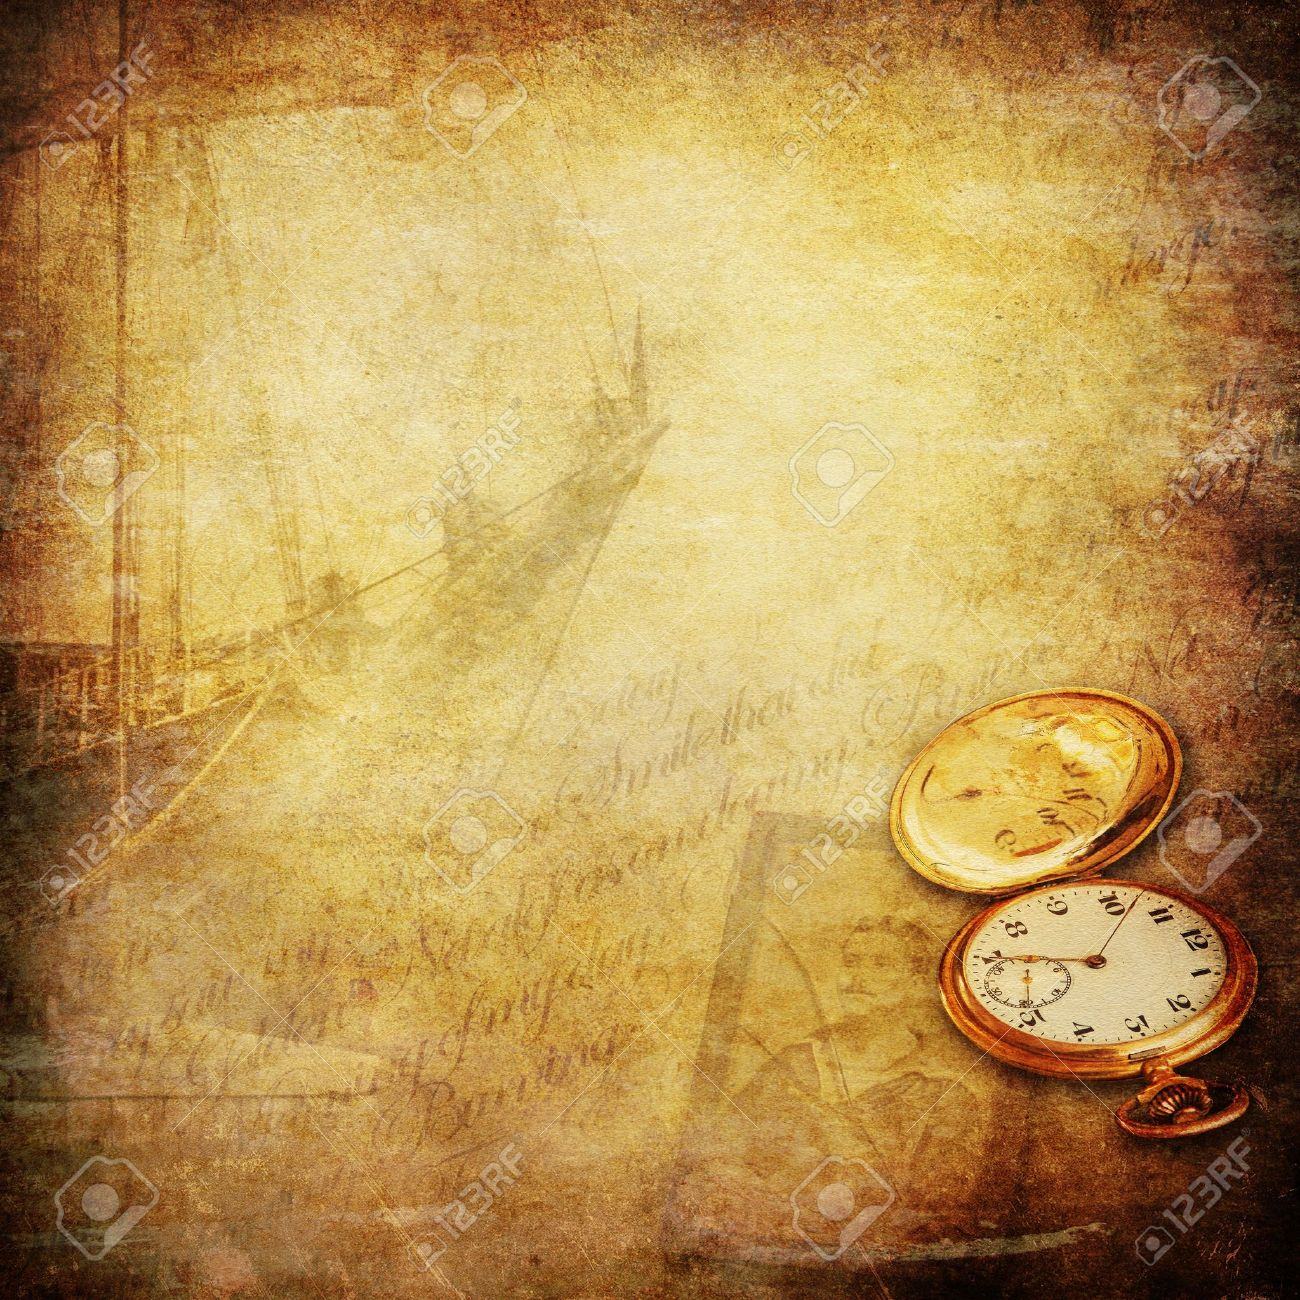 wallpaper with sailing ship, a pocket watch, an old photo of a seaman and a open book Stock Photo - 14267426